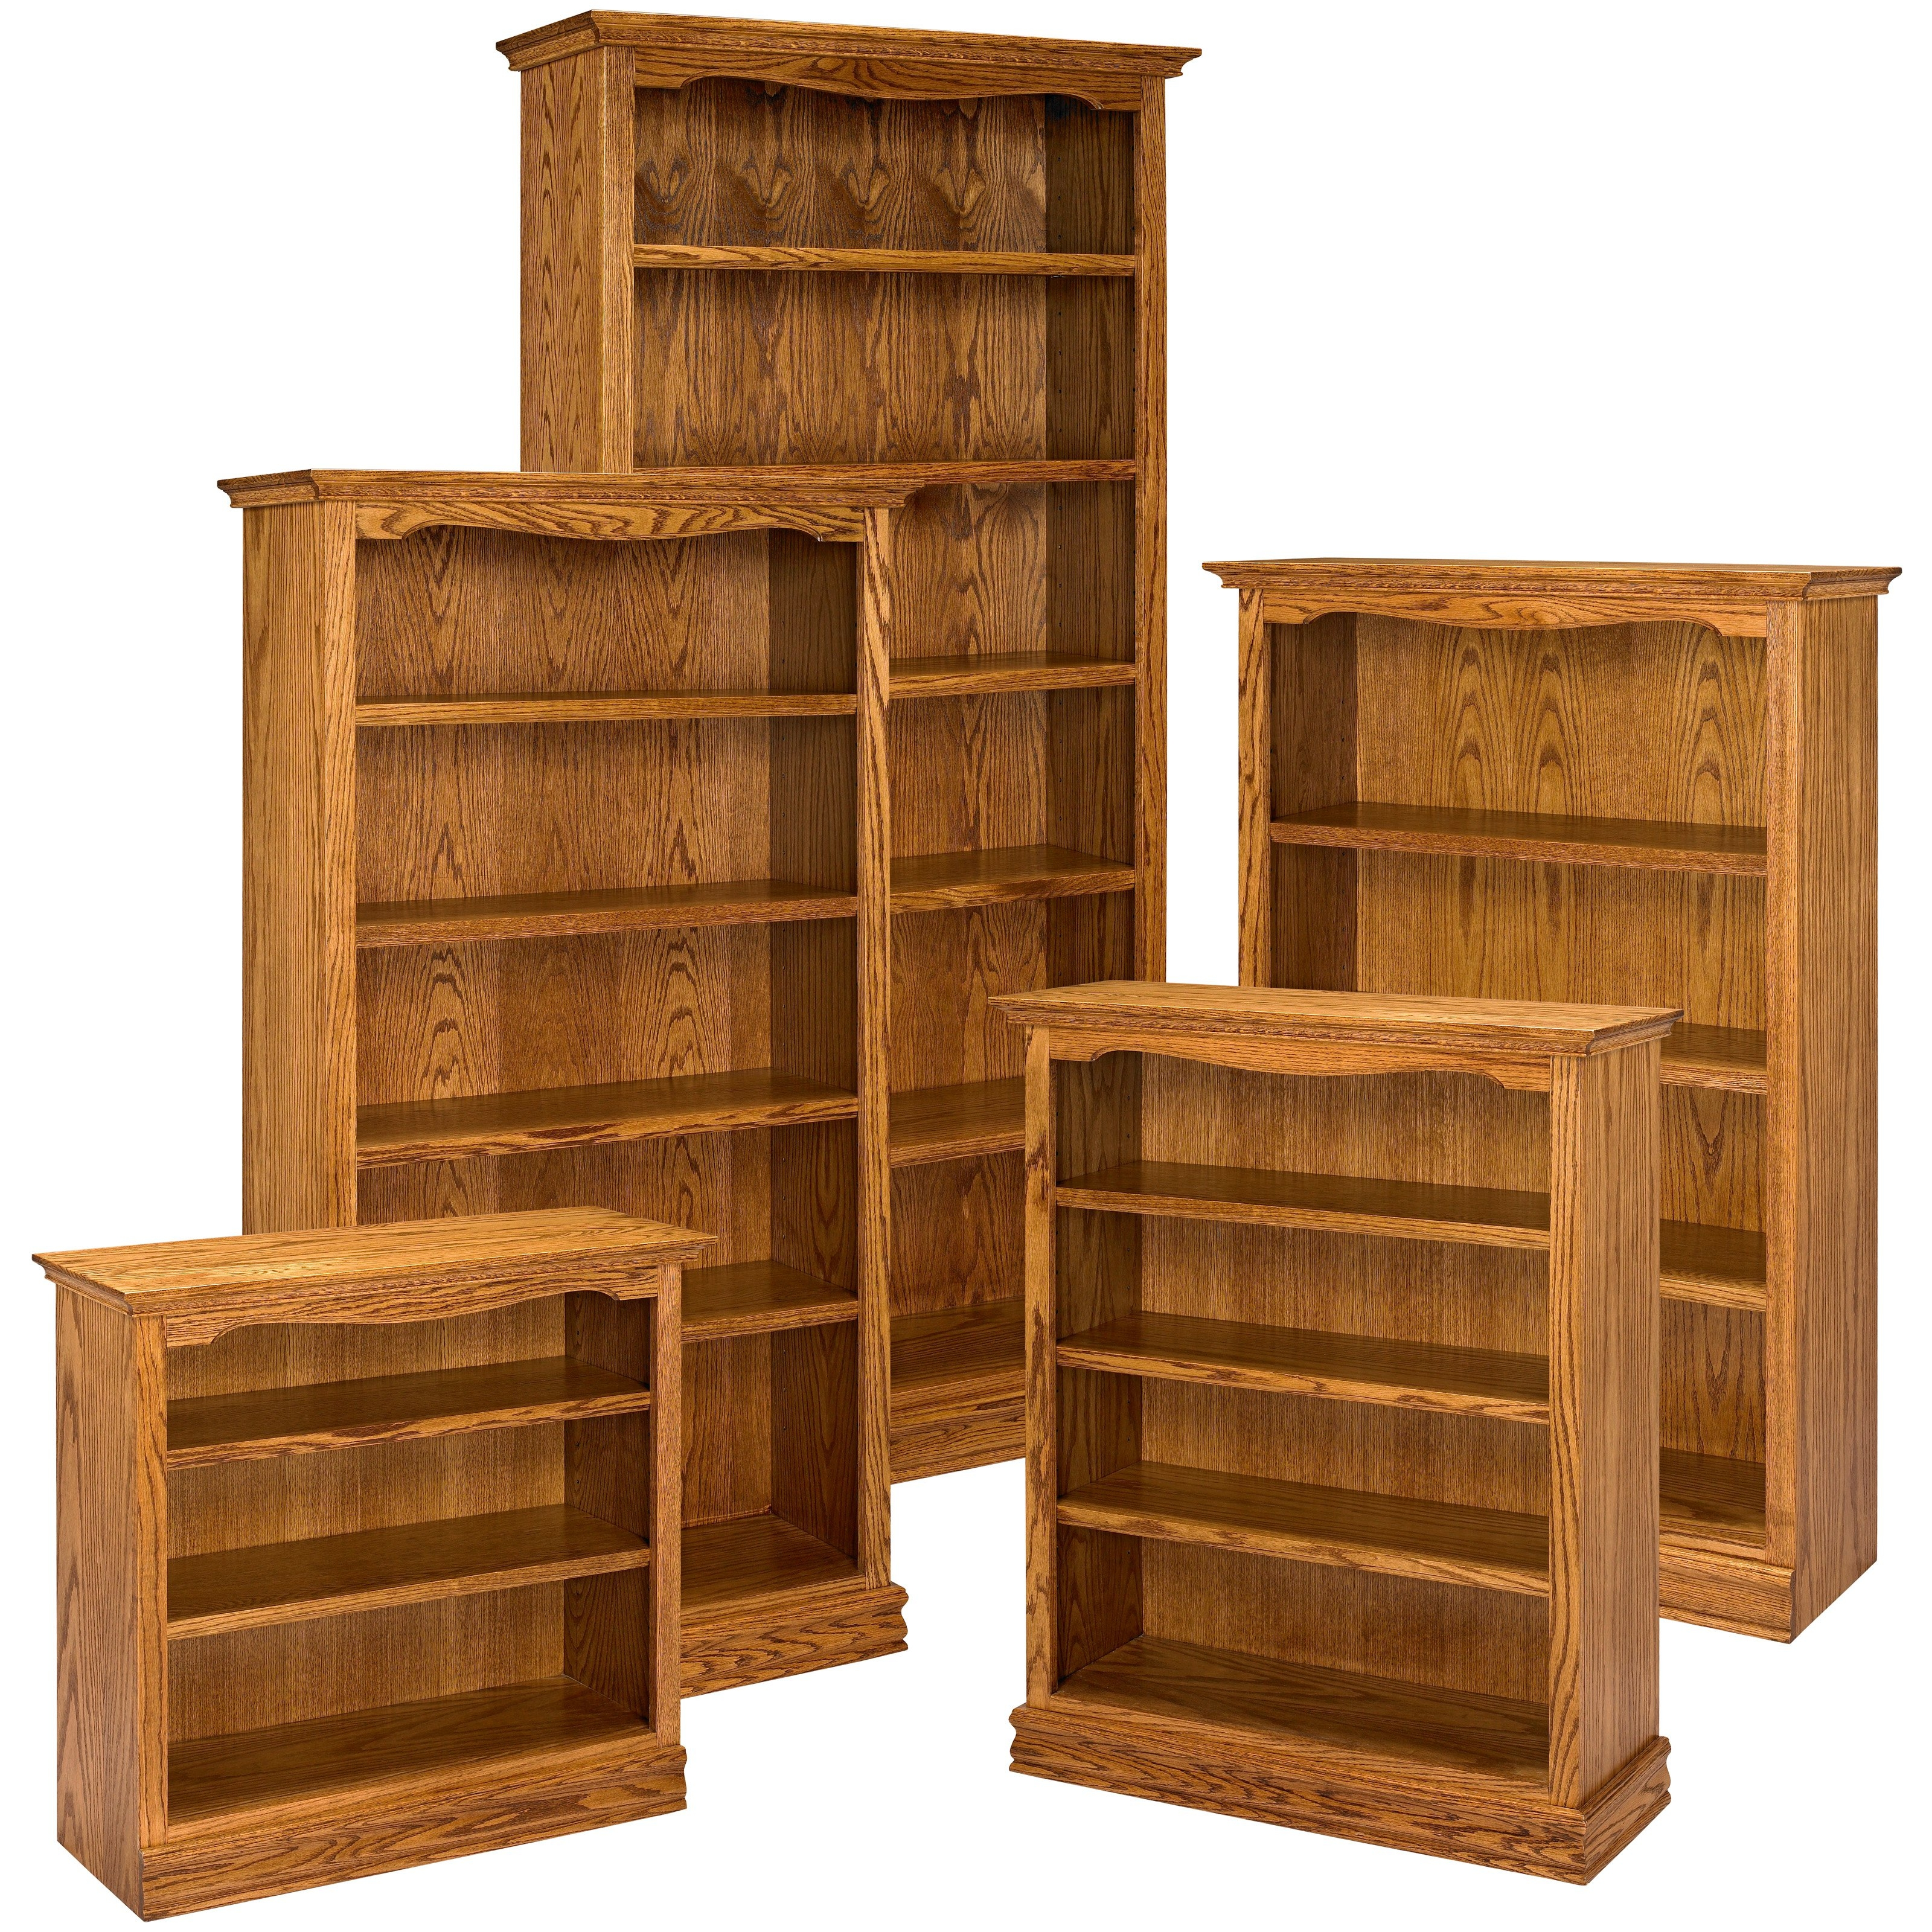 Remmington Heavy Duty Bookcase Oak Bookcases At Hayneedle With Regard To Oak Bookcase (#7 of 8)